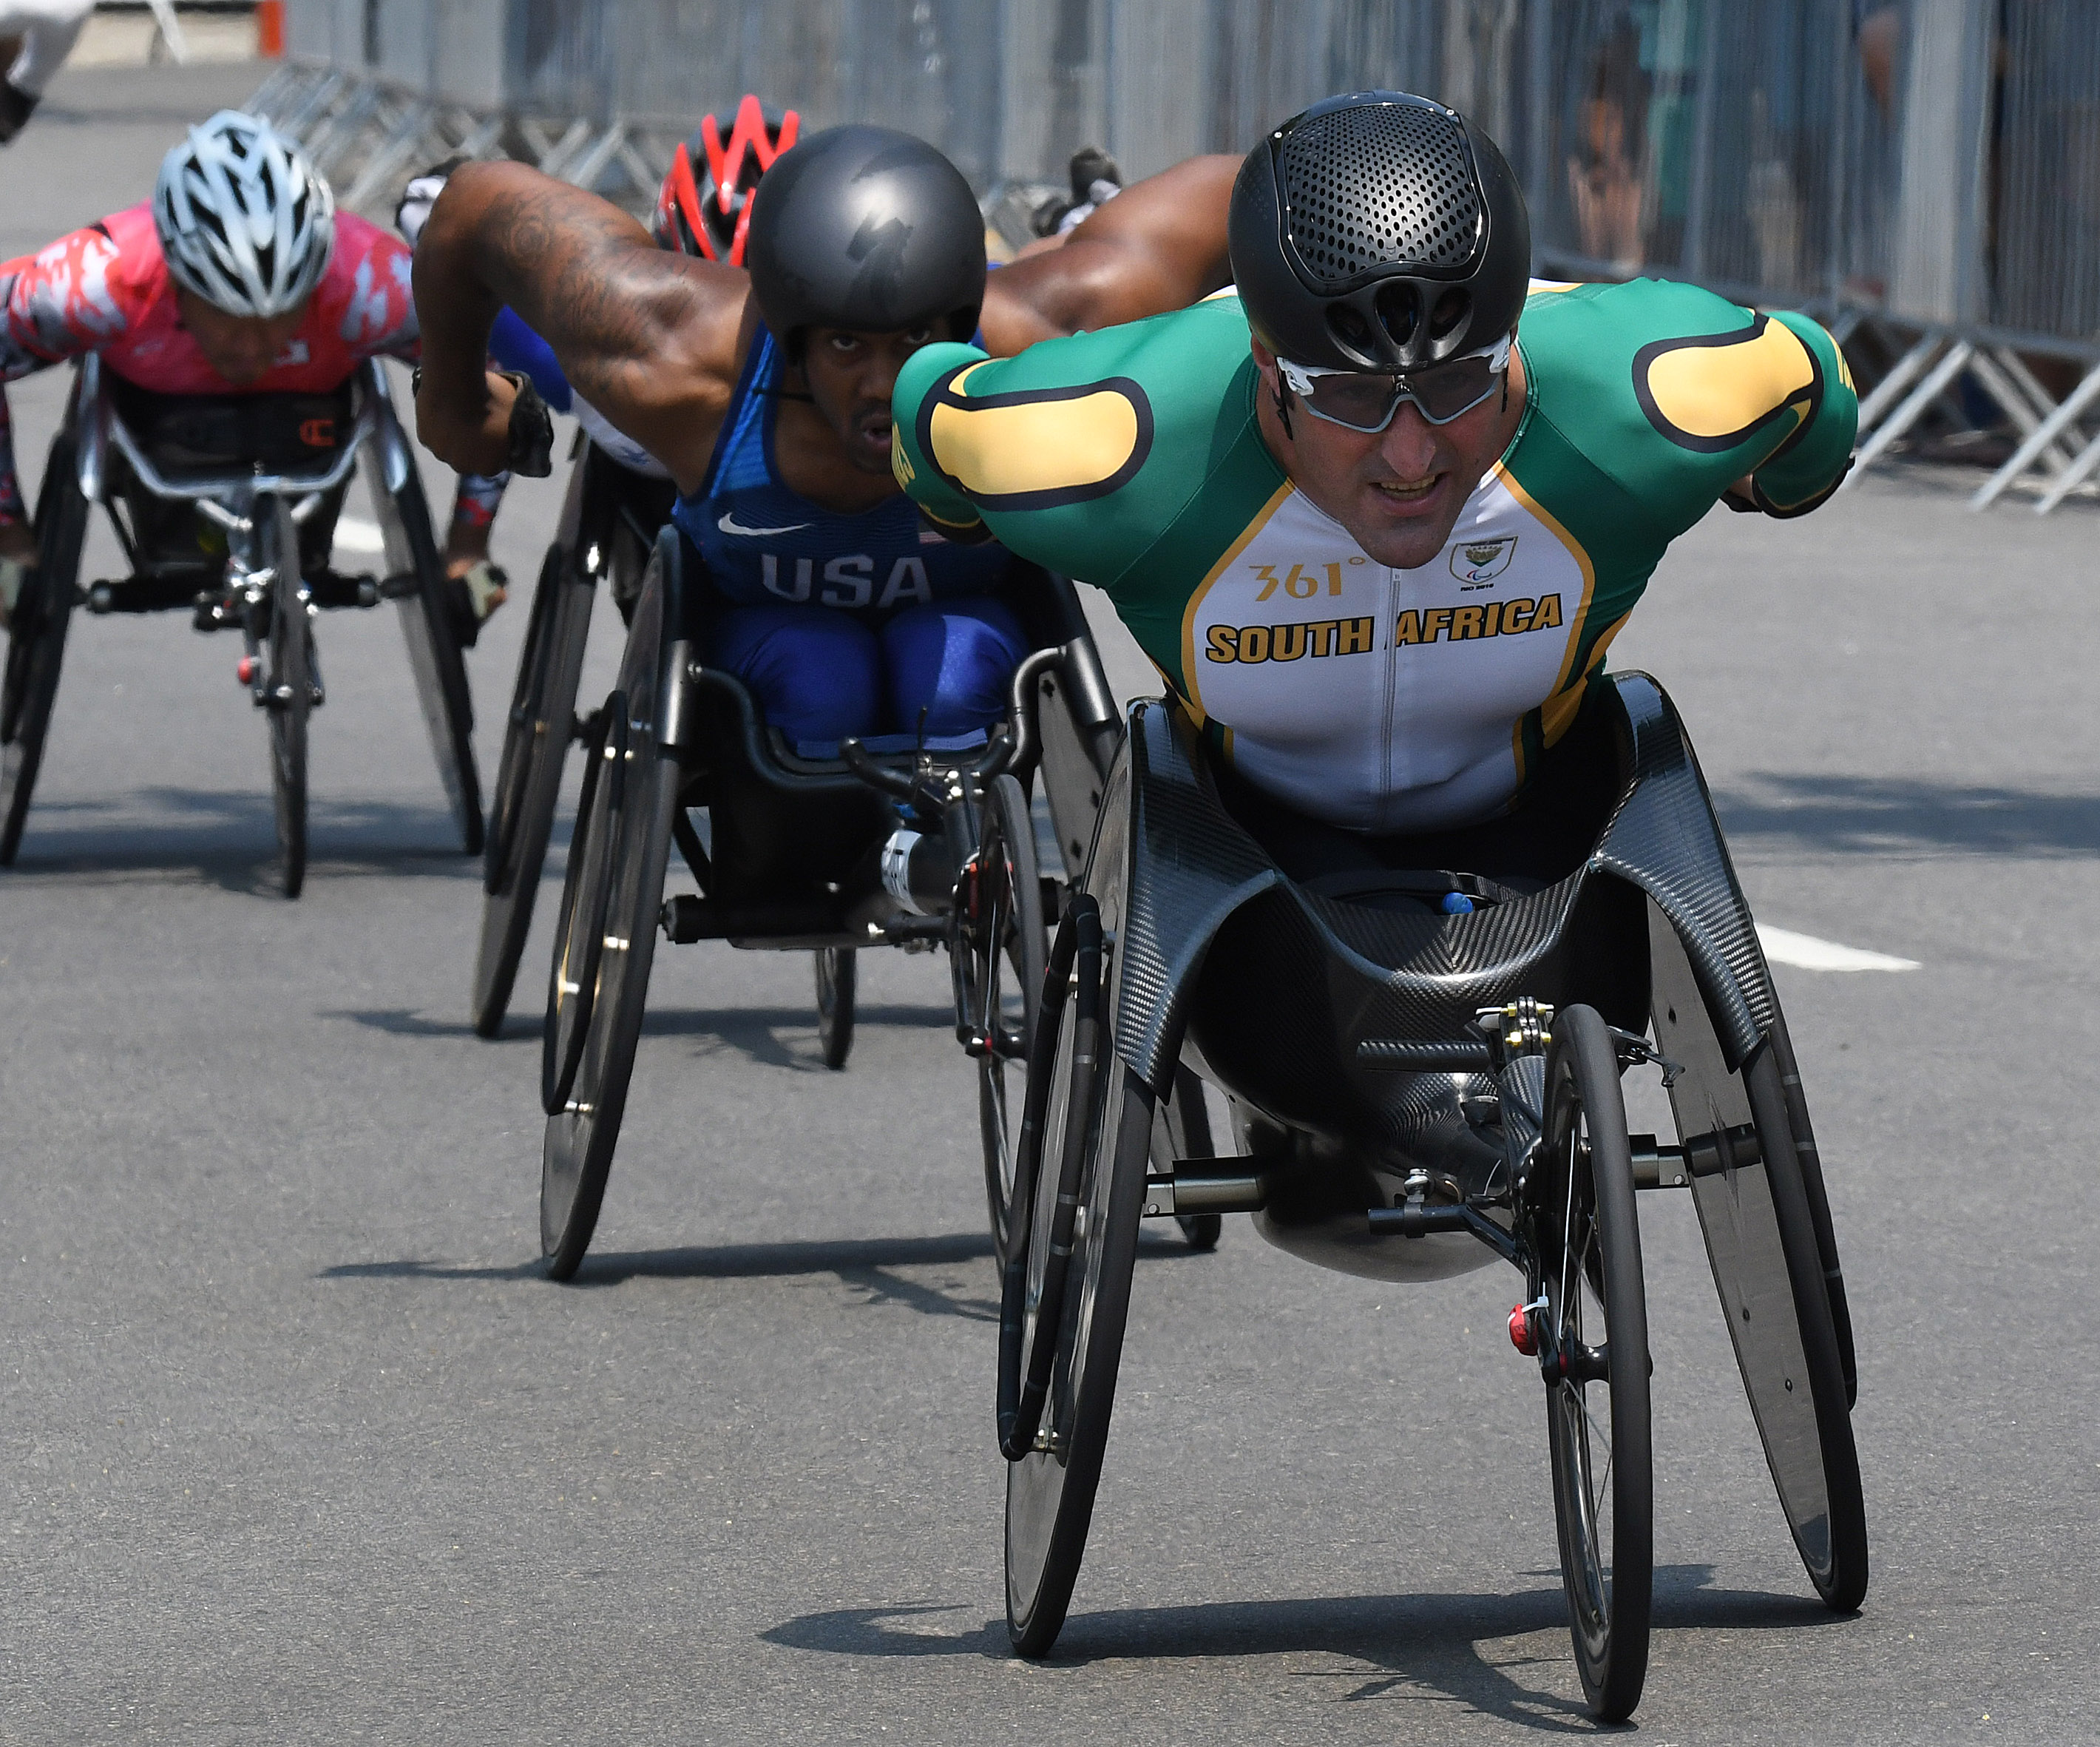 Van Dyk sixth in marathon as Team SA's 2016 Games come to an end